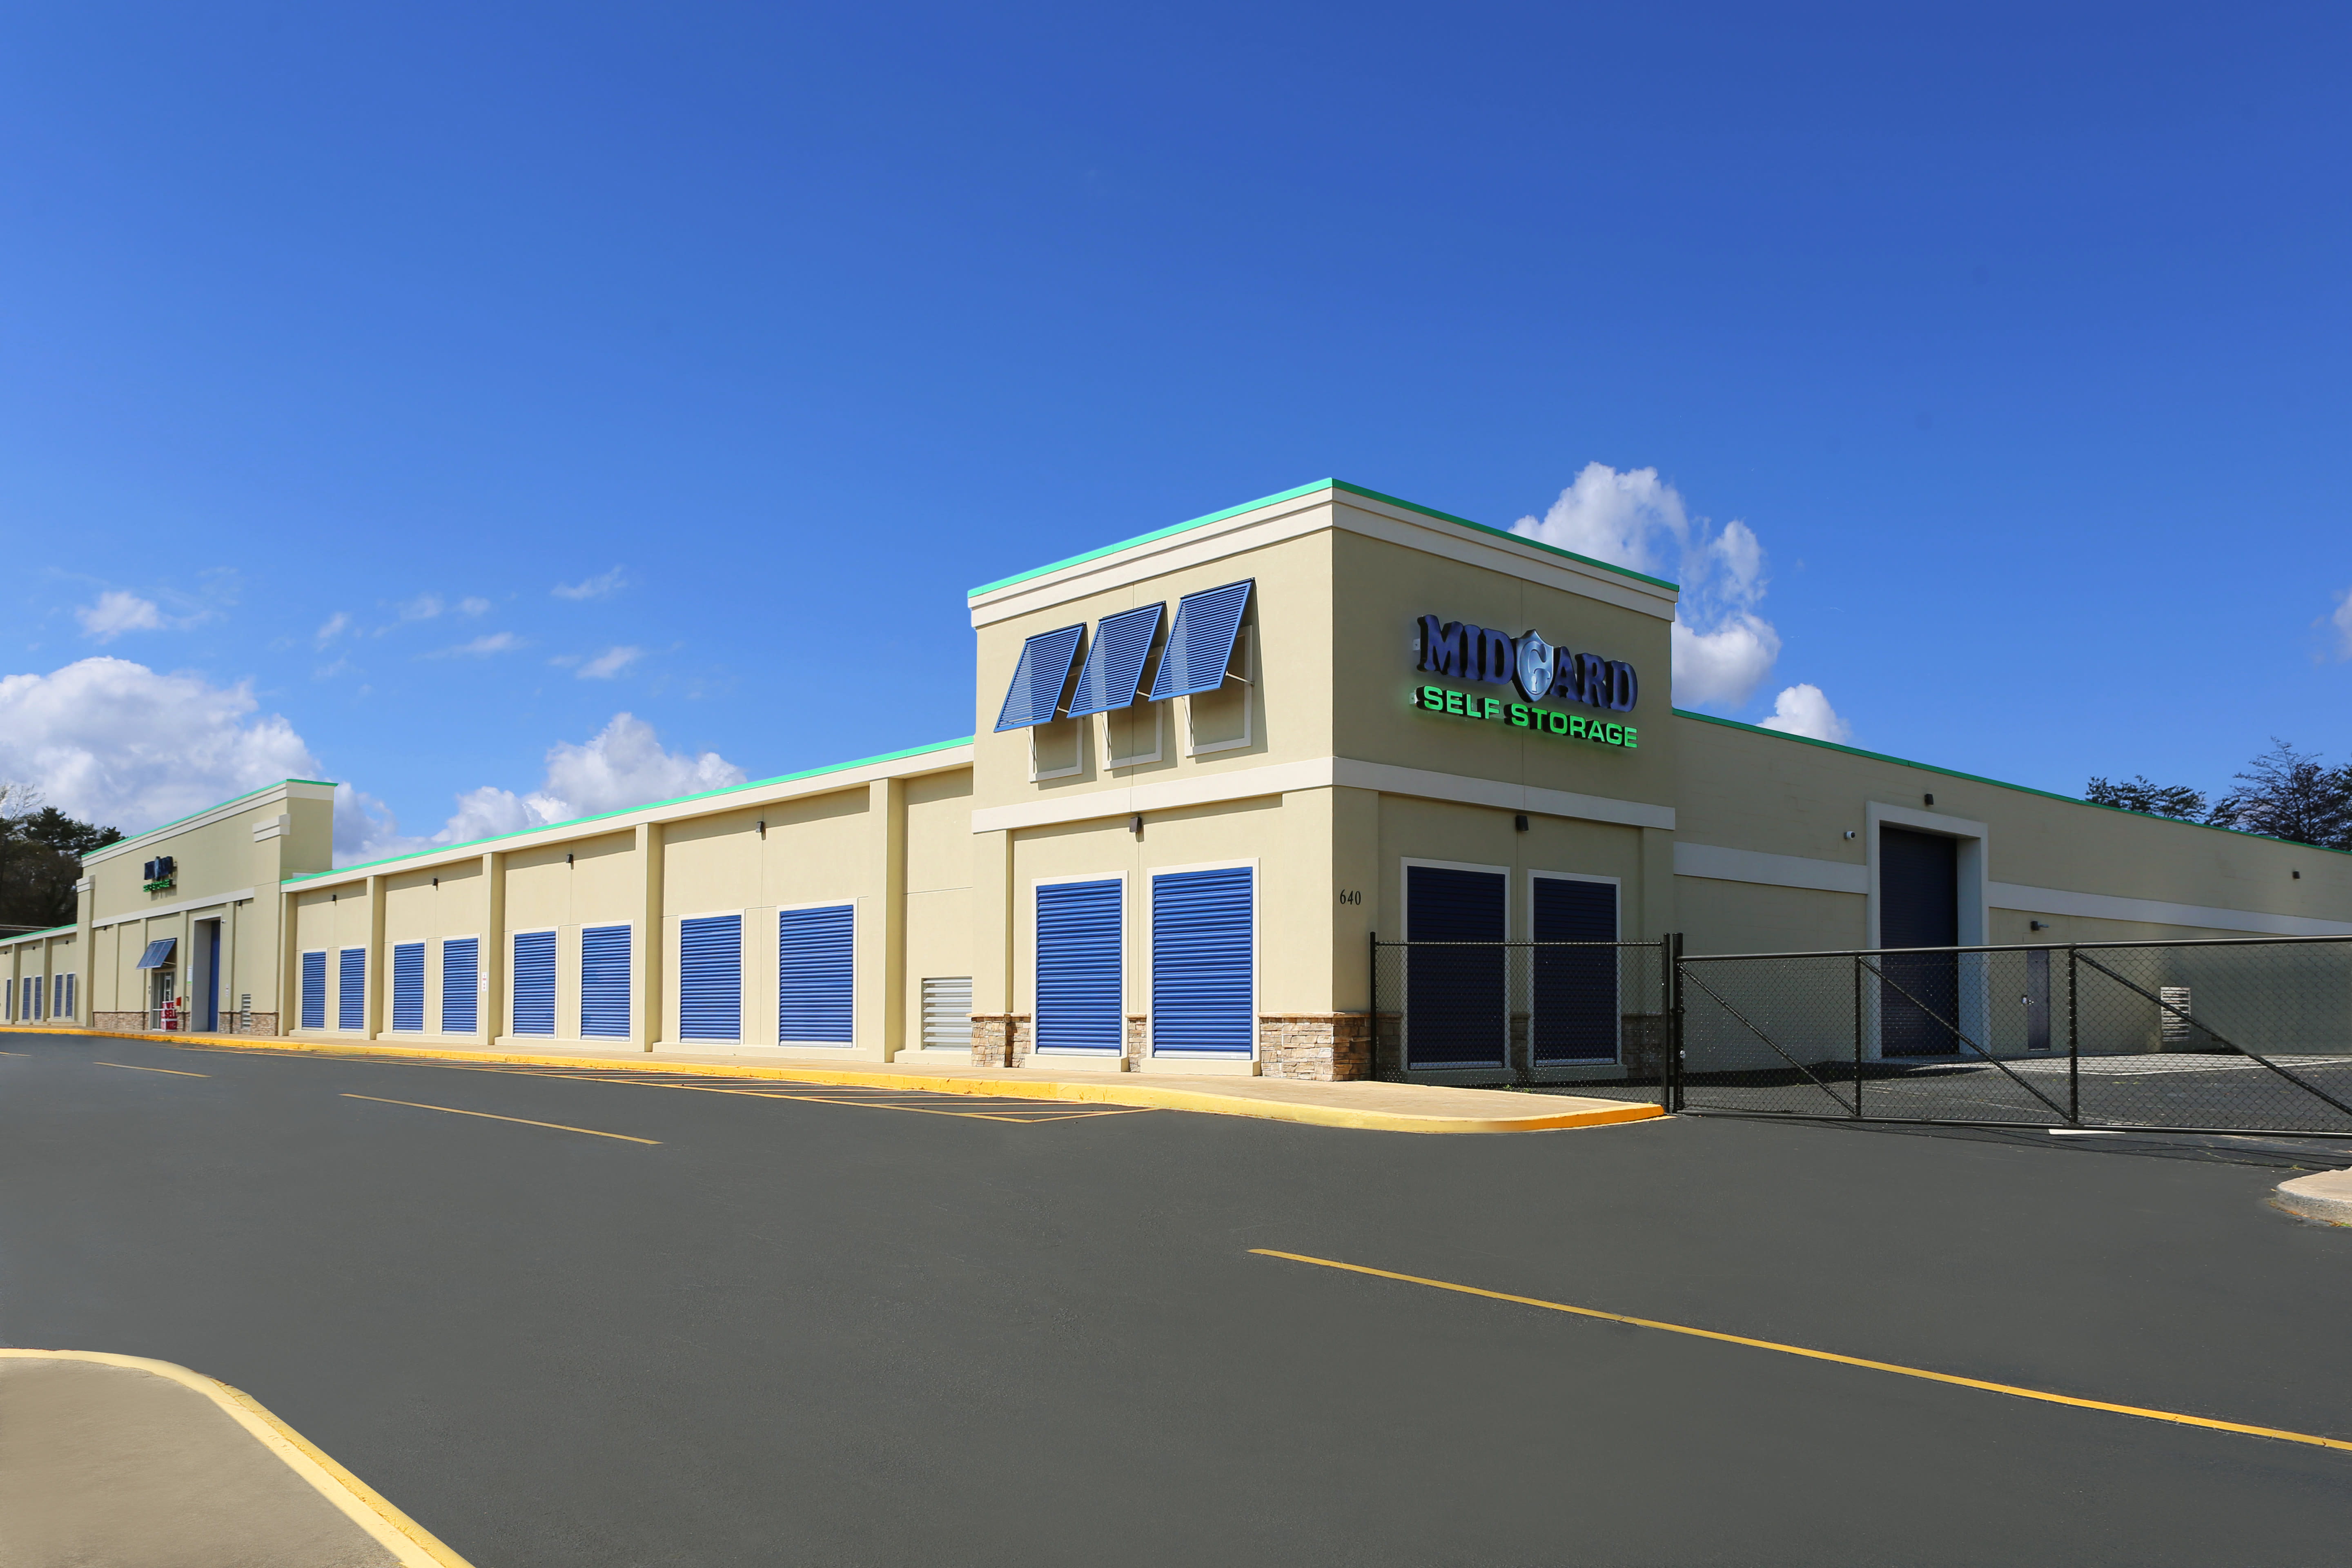 Midgard Self Storage front view in Greenville, South Carolina